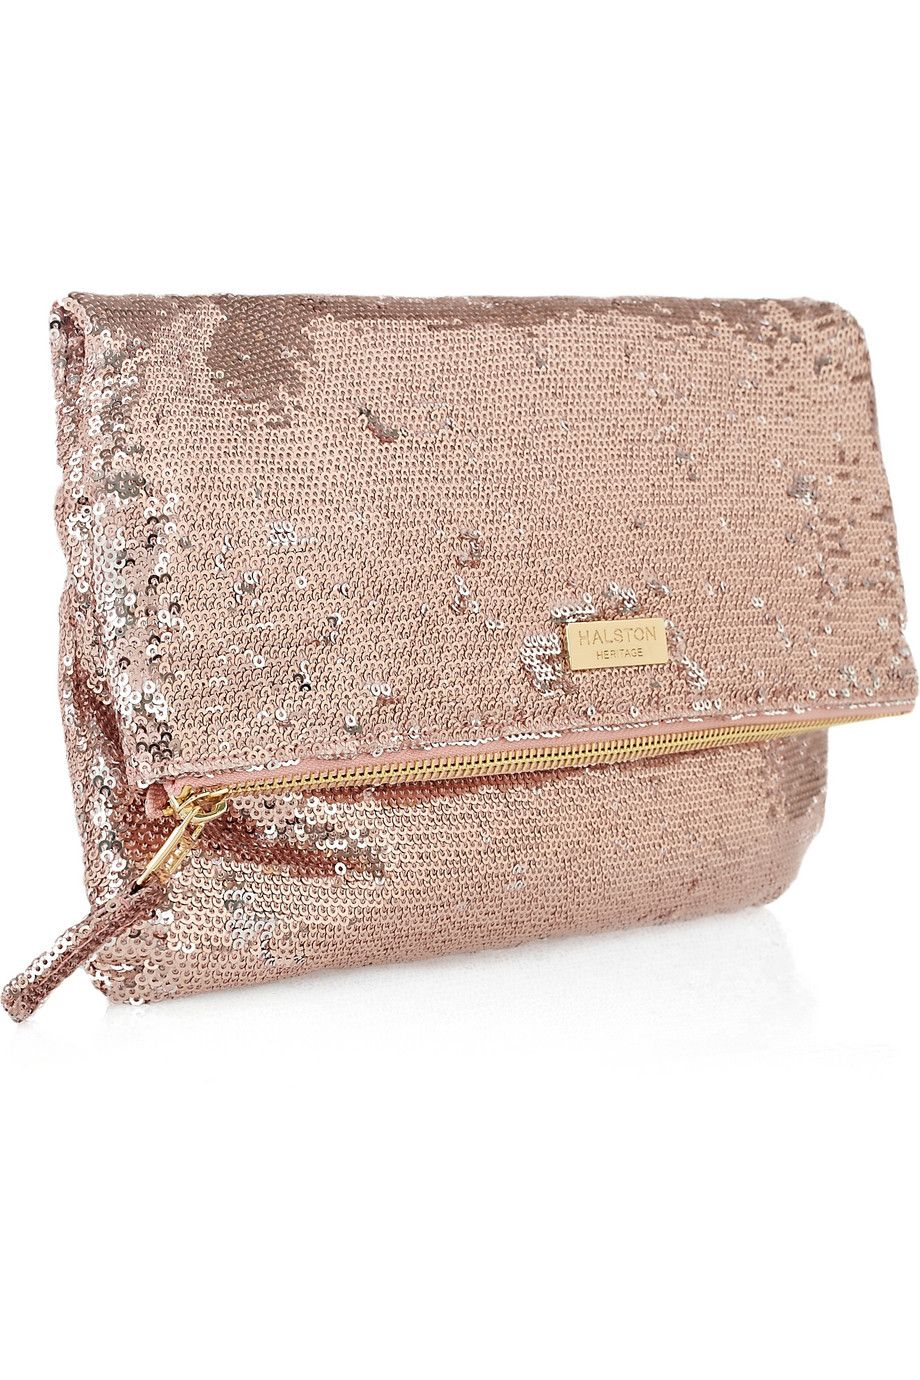 This rose gold sequin clutch would be perfect with a pair of jeans ...